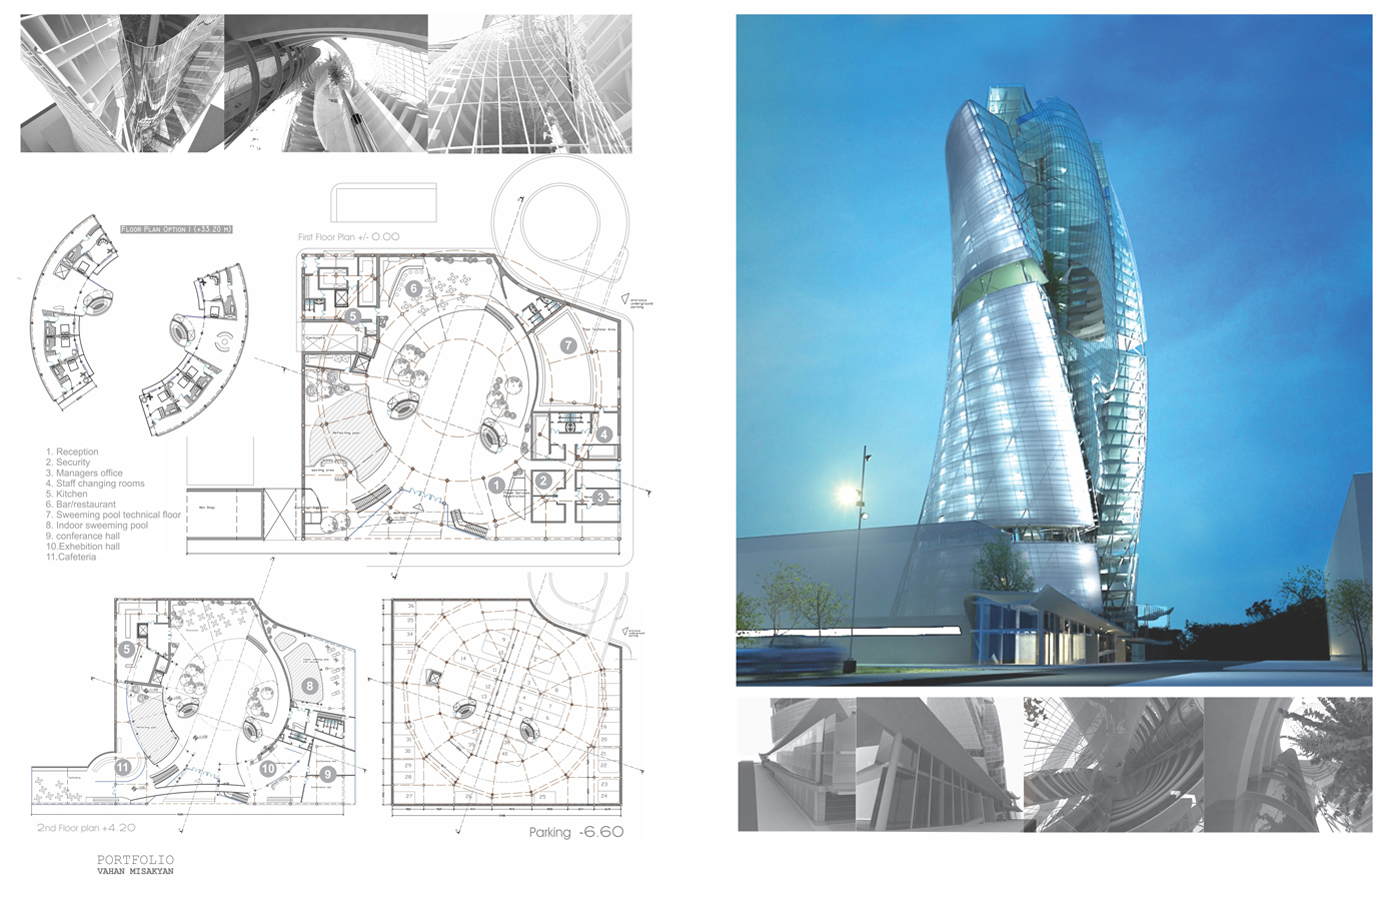 This proposal turns inside out the formalist language of signification, by introducing to the rigorous composition of verticality the most mundane architectural program in Yerevan. The 'title less' presentation (Hotel in Yerevan) becomes another part of the concept. Project gained much attention in 2008 through International Design Awards in LA U.S.A.